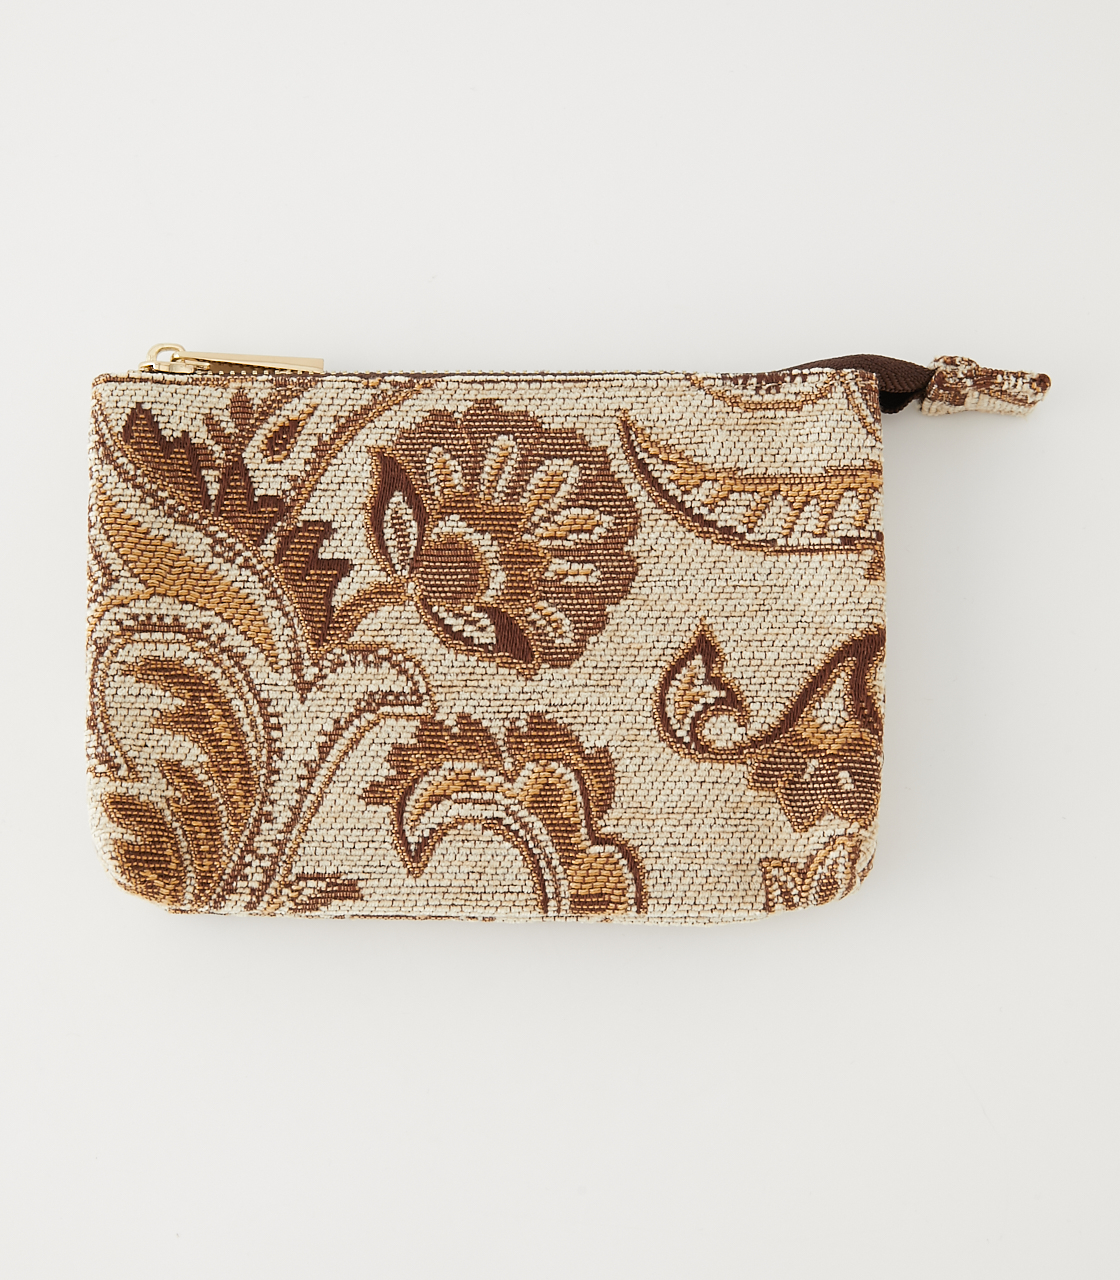 PAISLEY JACQUARD POUCH/ペイズリージャガードポーチ 詳細画像 柄BEG 1